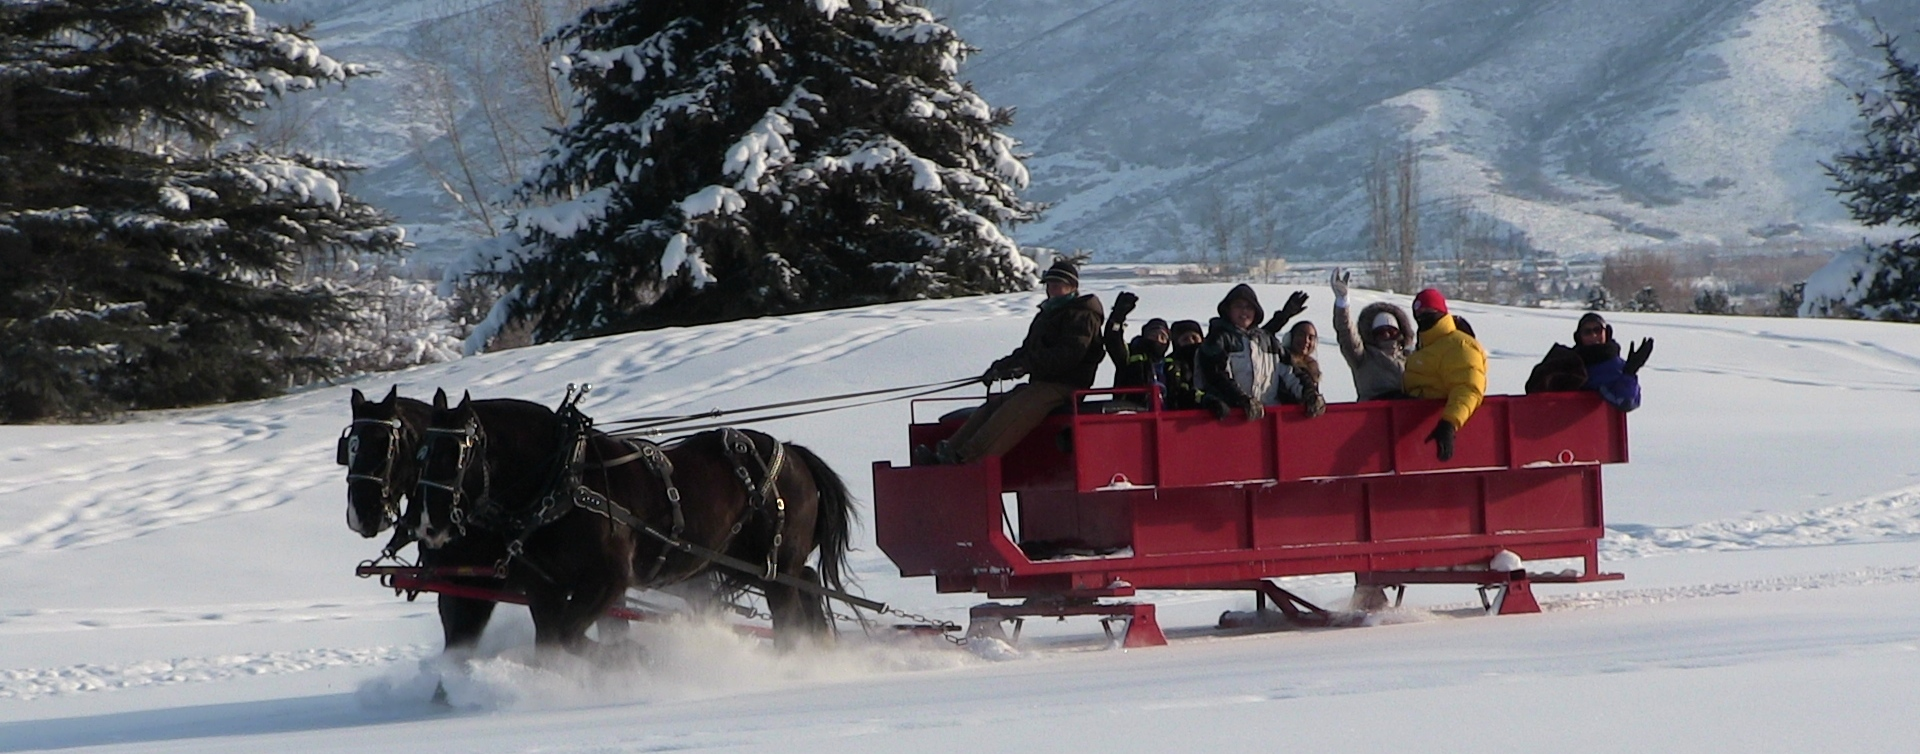 Winter Sleigh Ride At Homestead Resort in Heber, Utah.